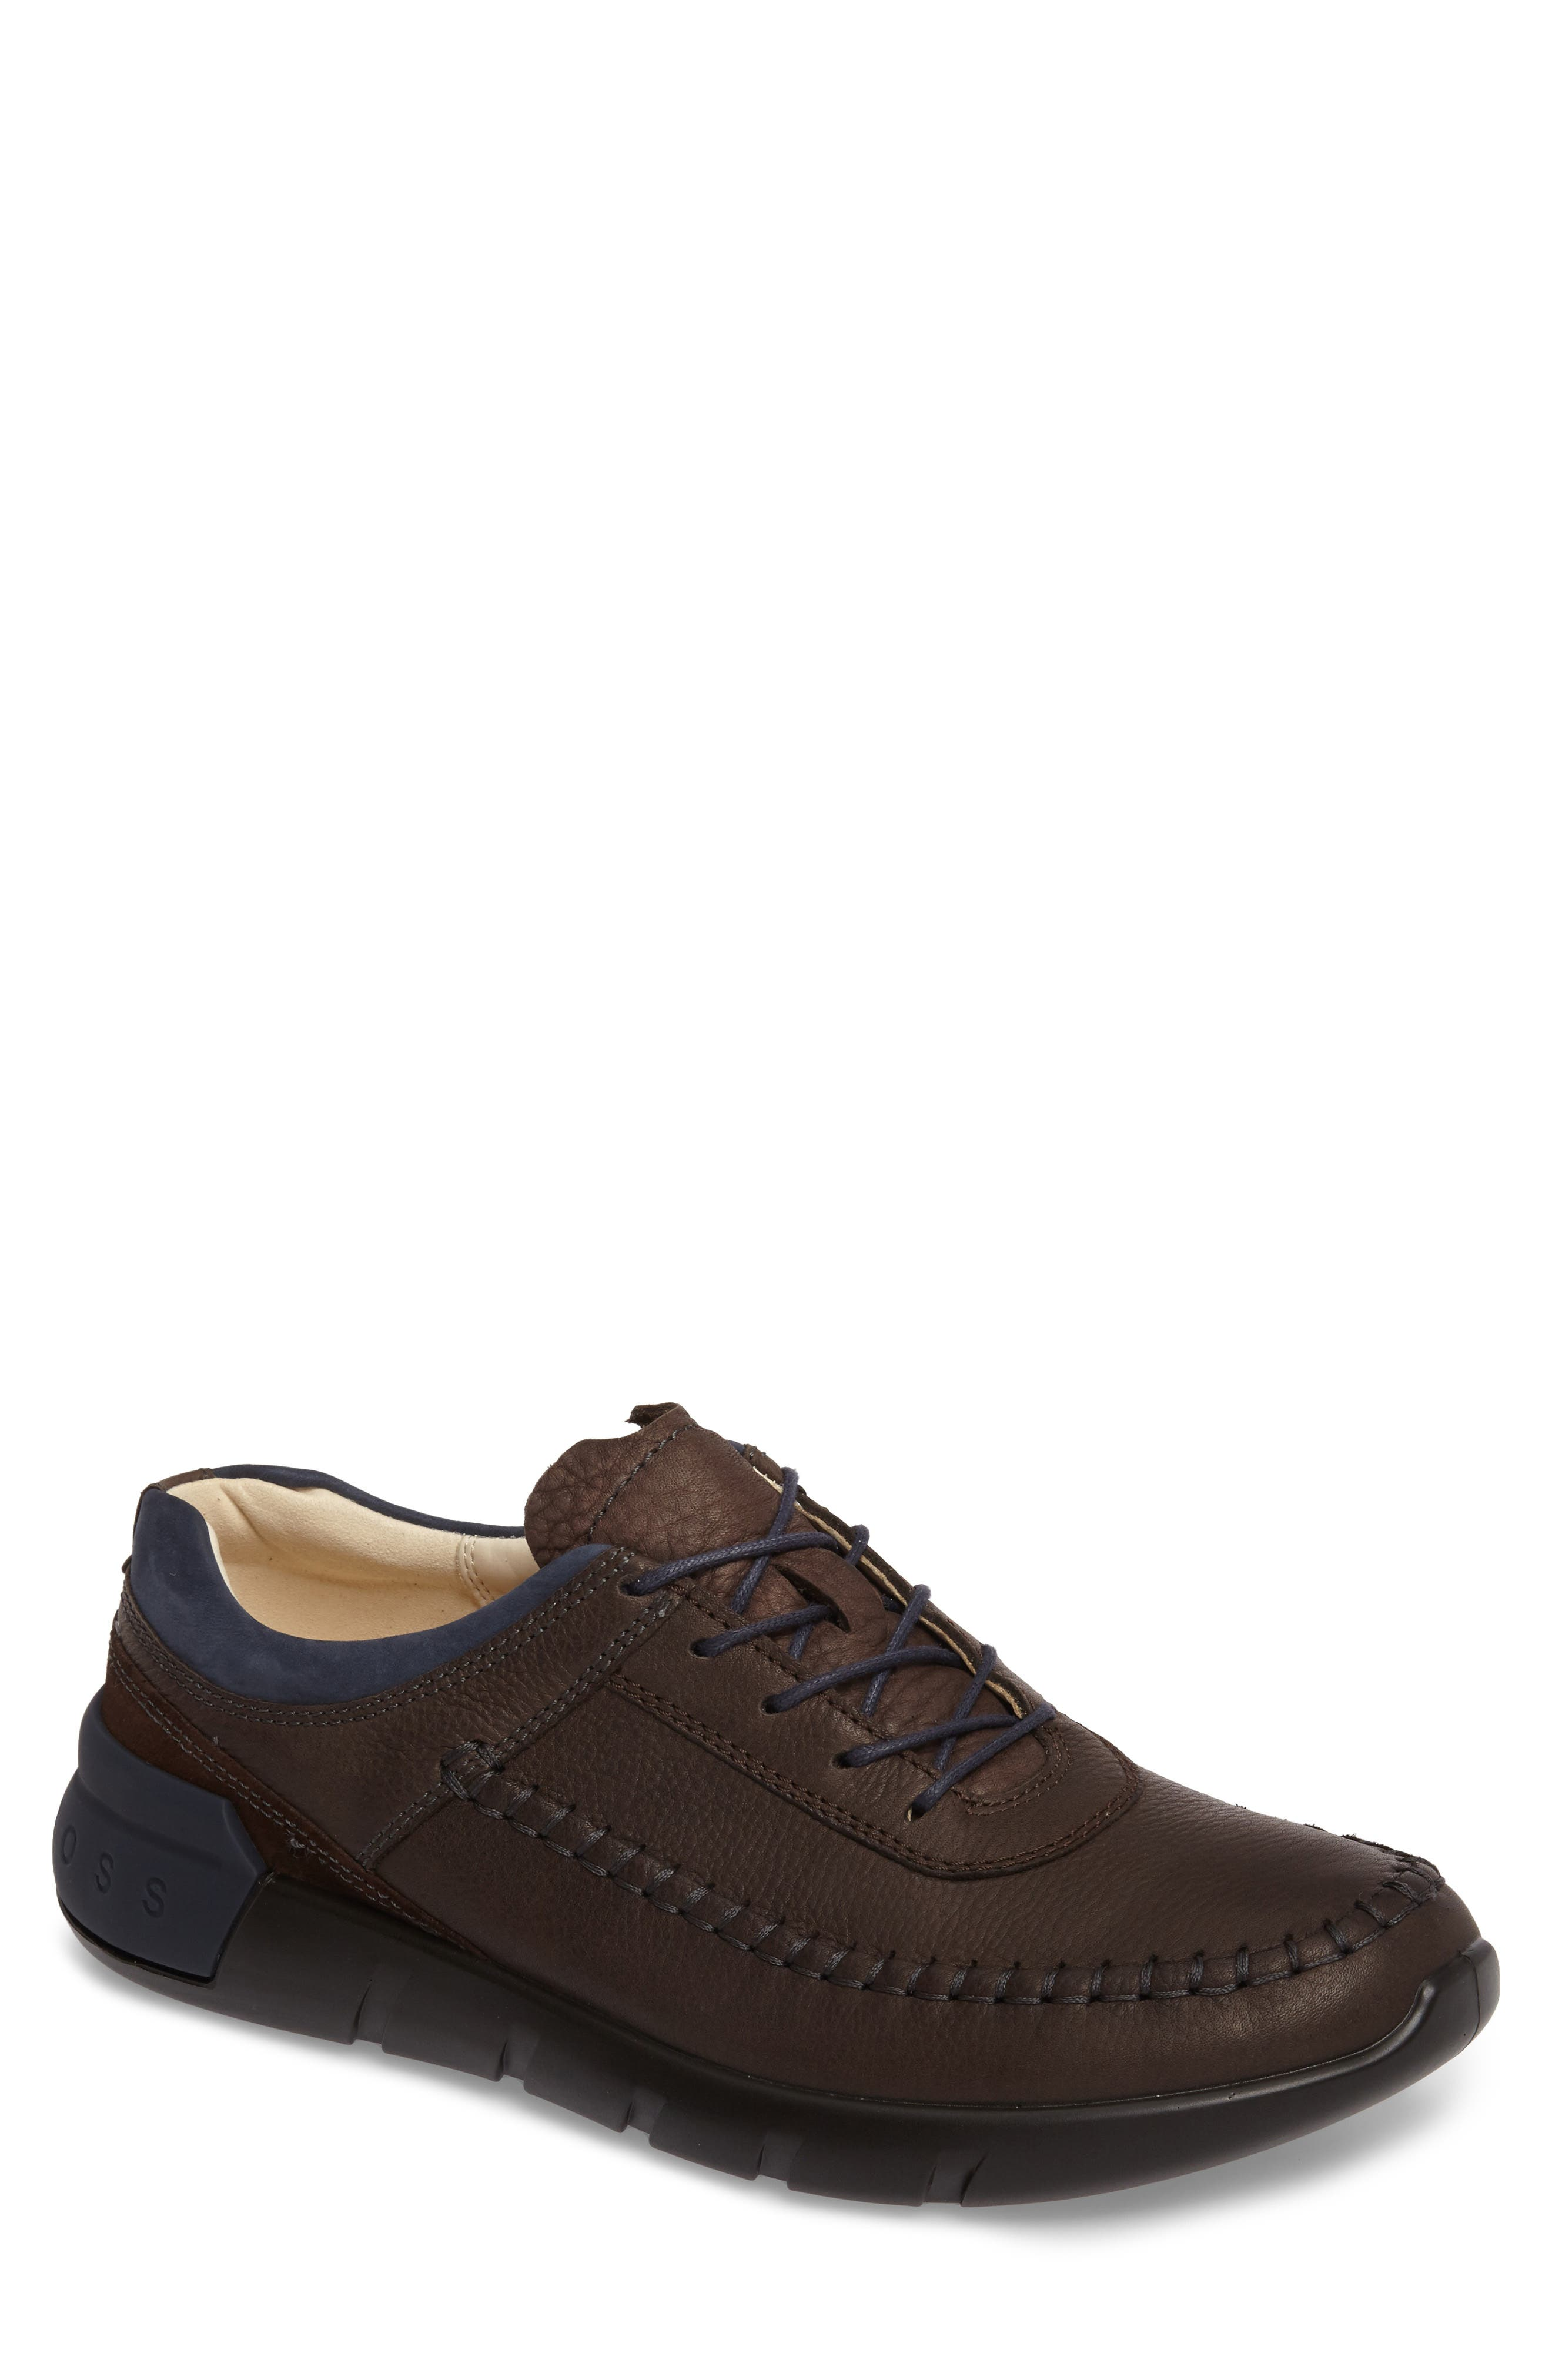 Cross X Classic Sneaker,                         Main,                         color, Coffee/ Marine Leather